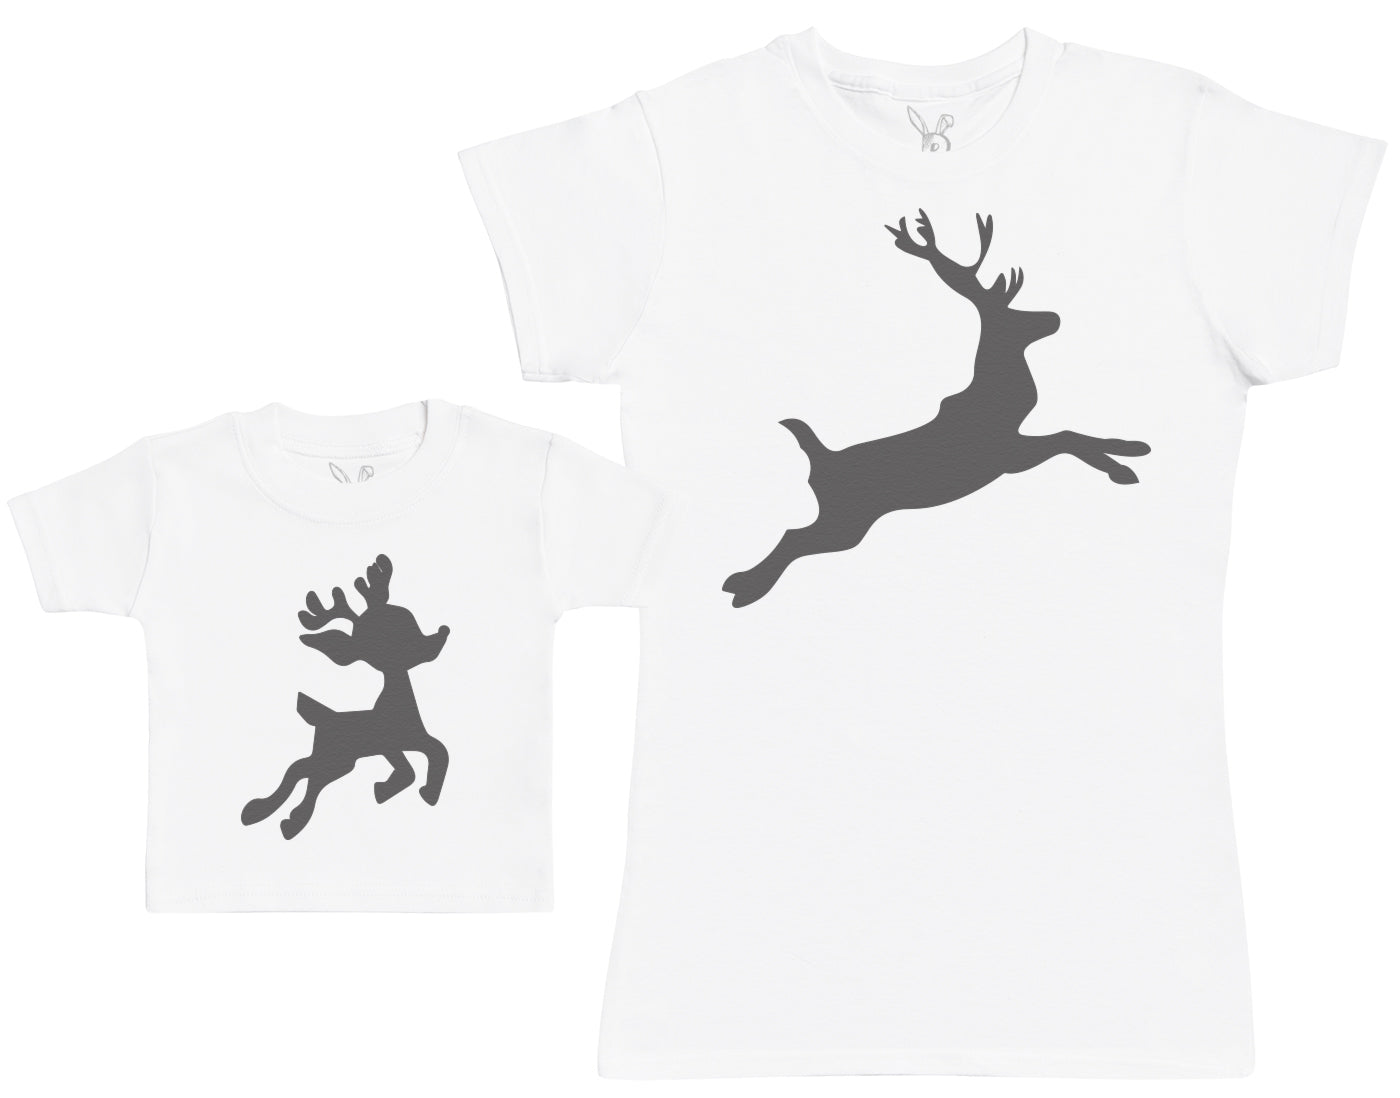 Baby Reindeer & Reindeer Matching Mother Baby Gift Set - Womens T Shirt & Baby T Shirt